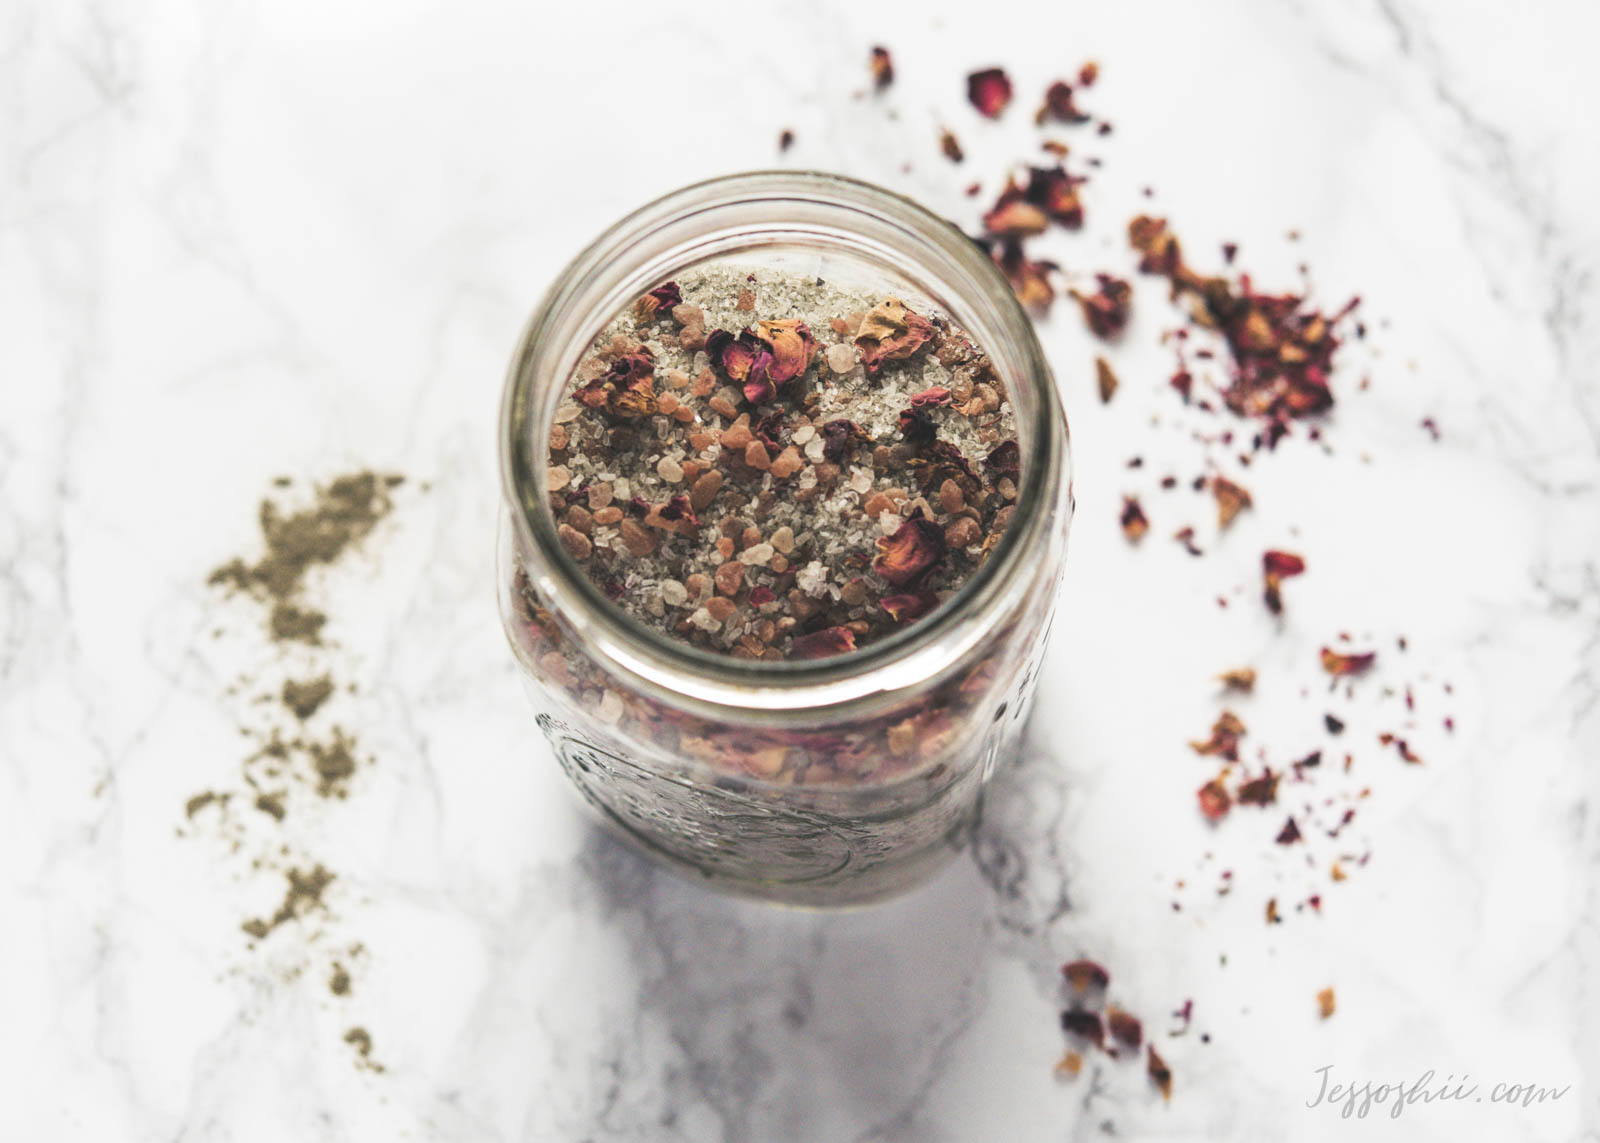 DIY Rose Petals & Sea Salt Detox Bath Soak in Jar